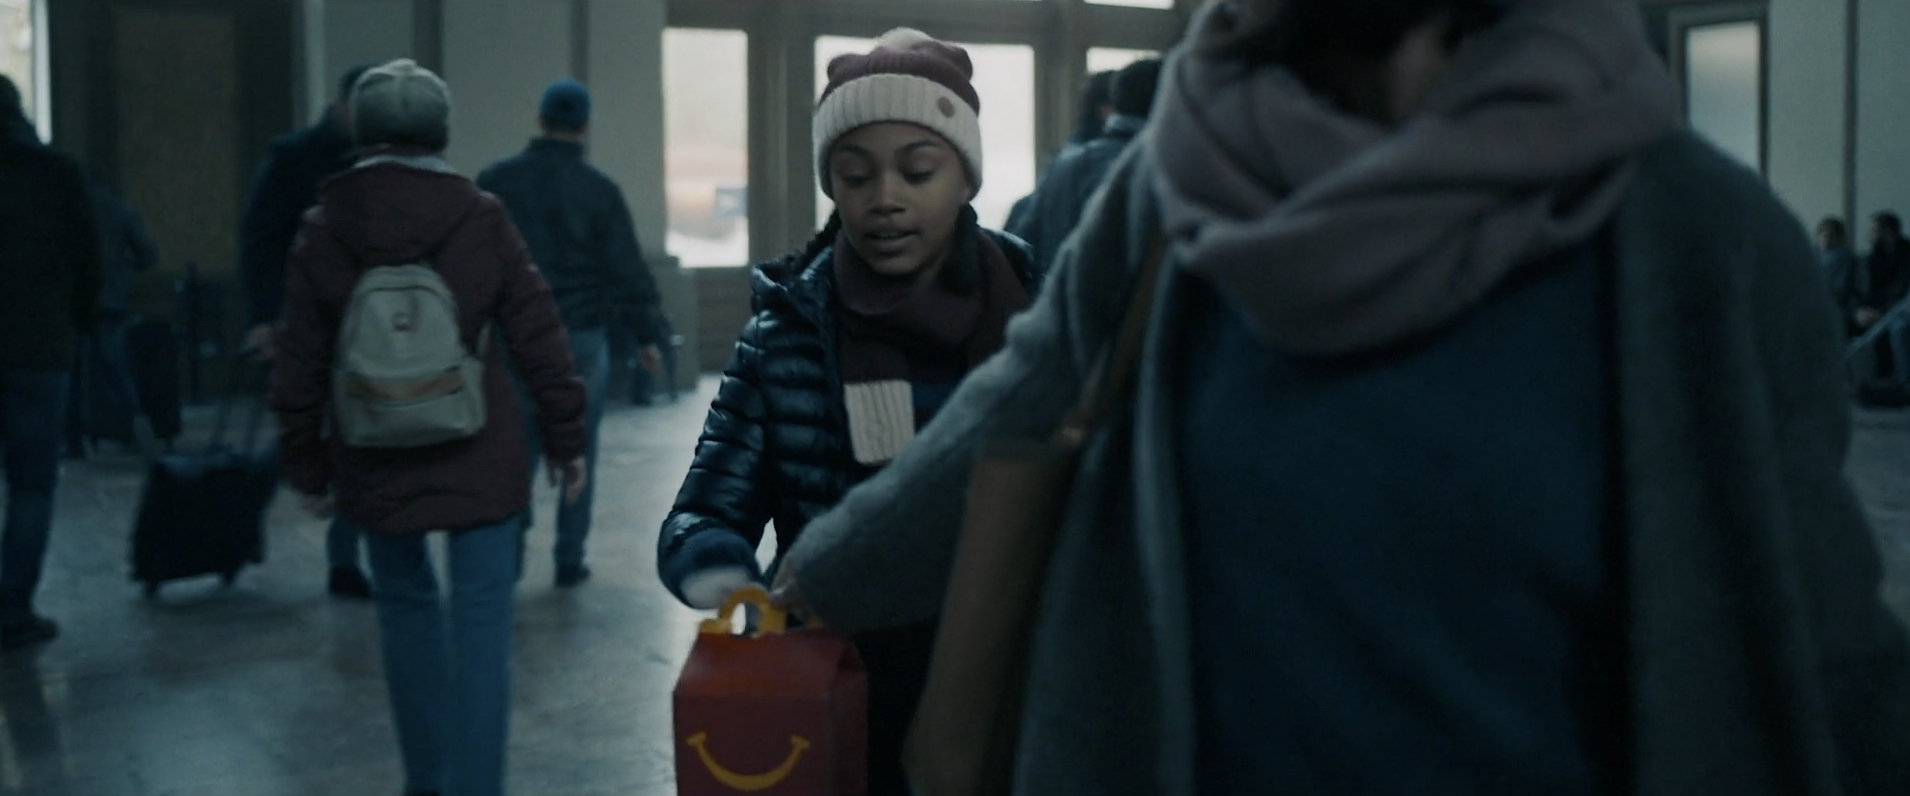 The Gift, McDonald's Christmas commercial